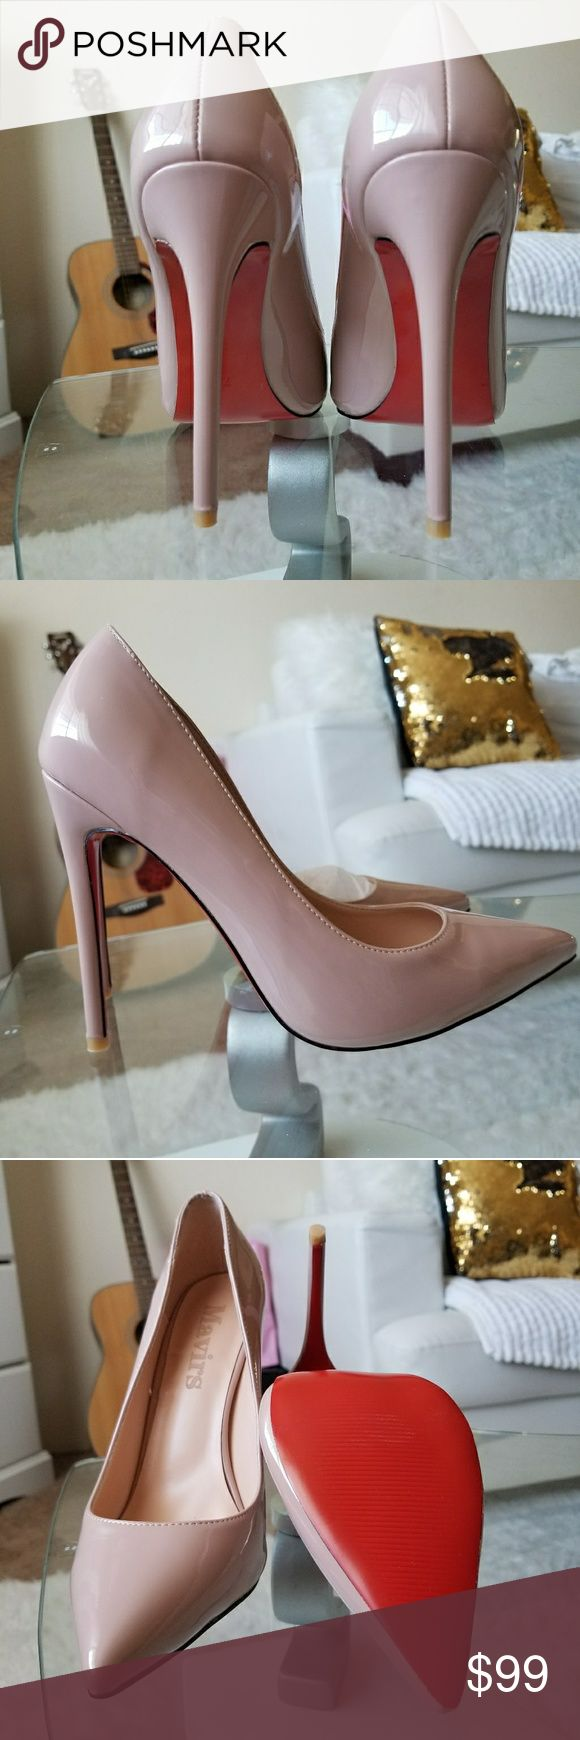 Nude stiletto heels pointy toe with red bottom Amazingly stylish nude heels pointy toe with red bottom it would go with any outfit because of the color is neutral. Mavirs Shoes Heels